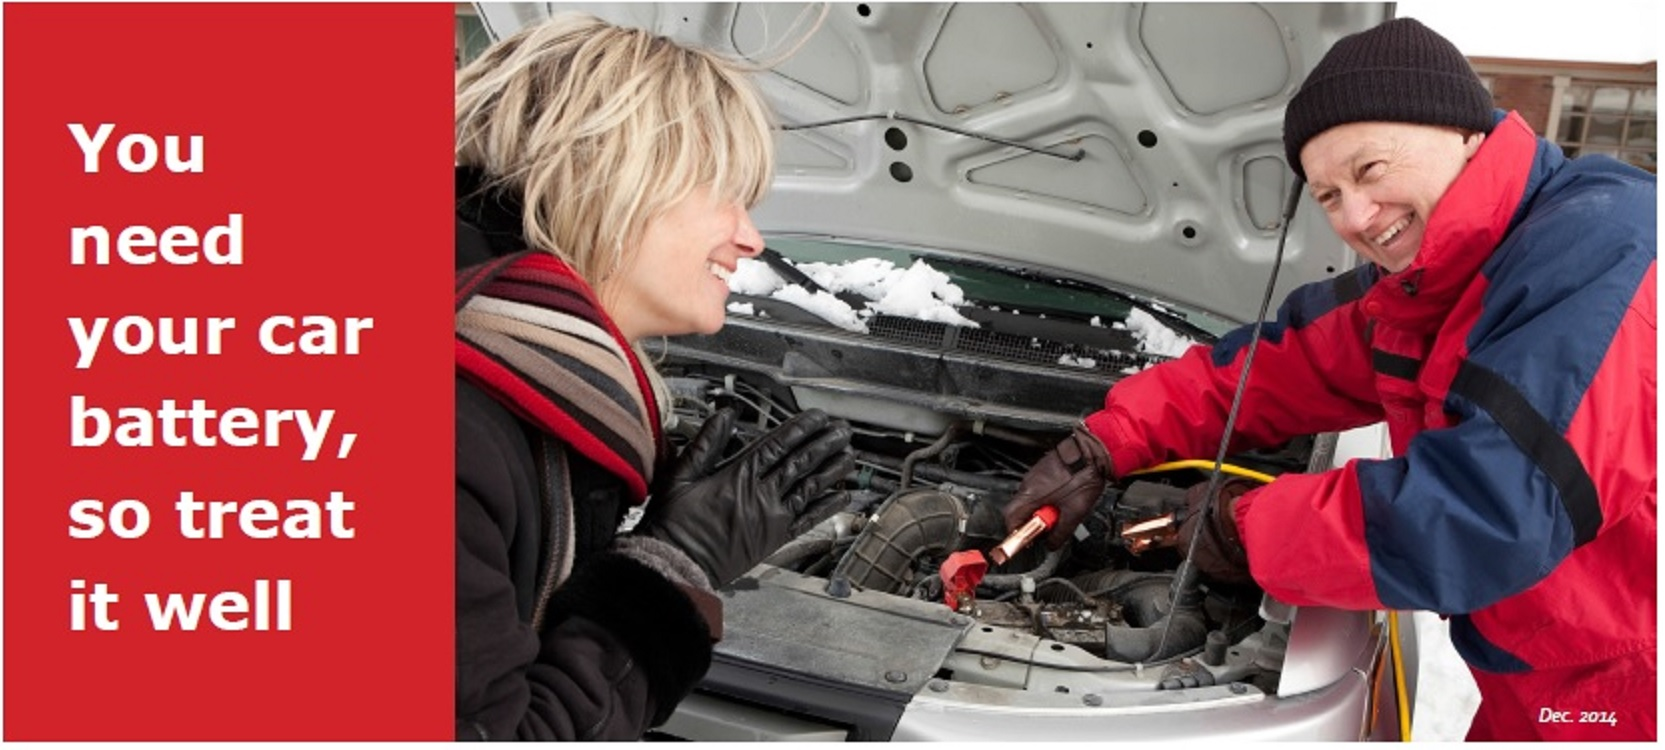 You Need Your Car Battery, So Treat It Well!